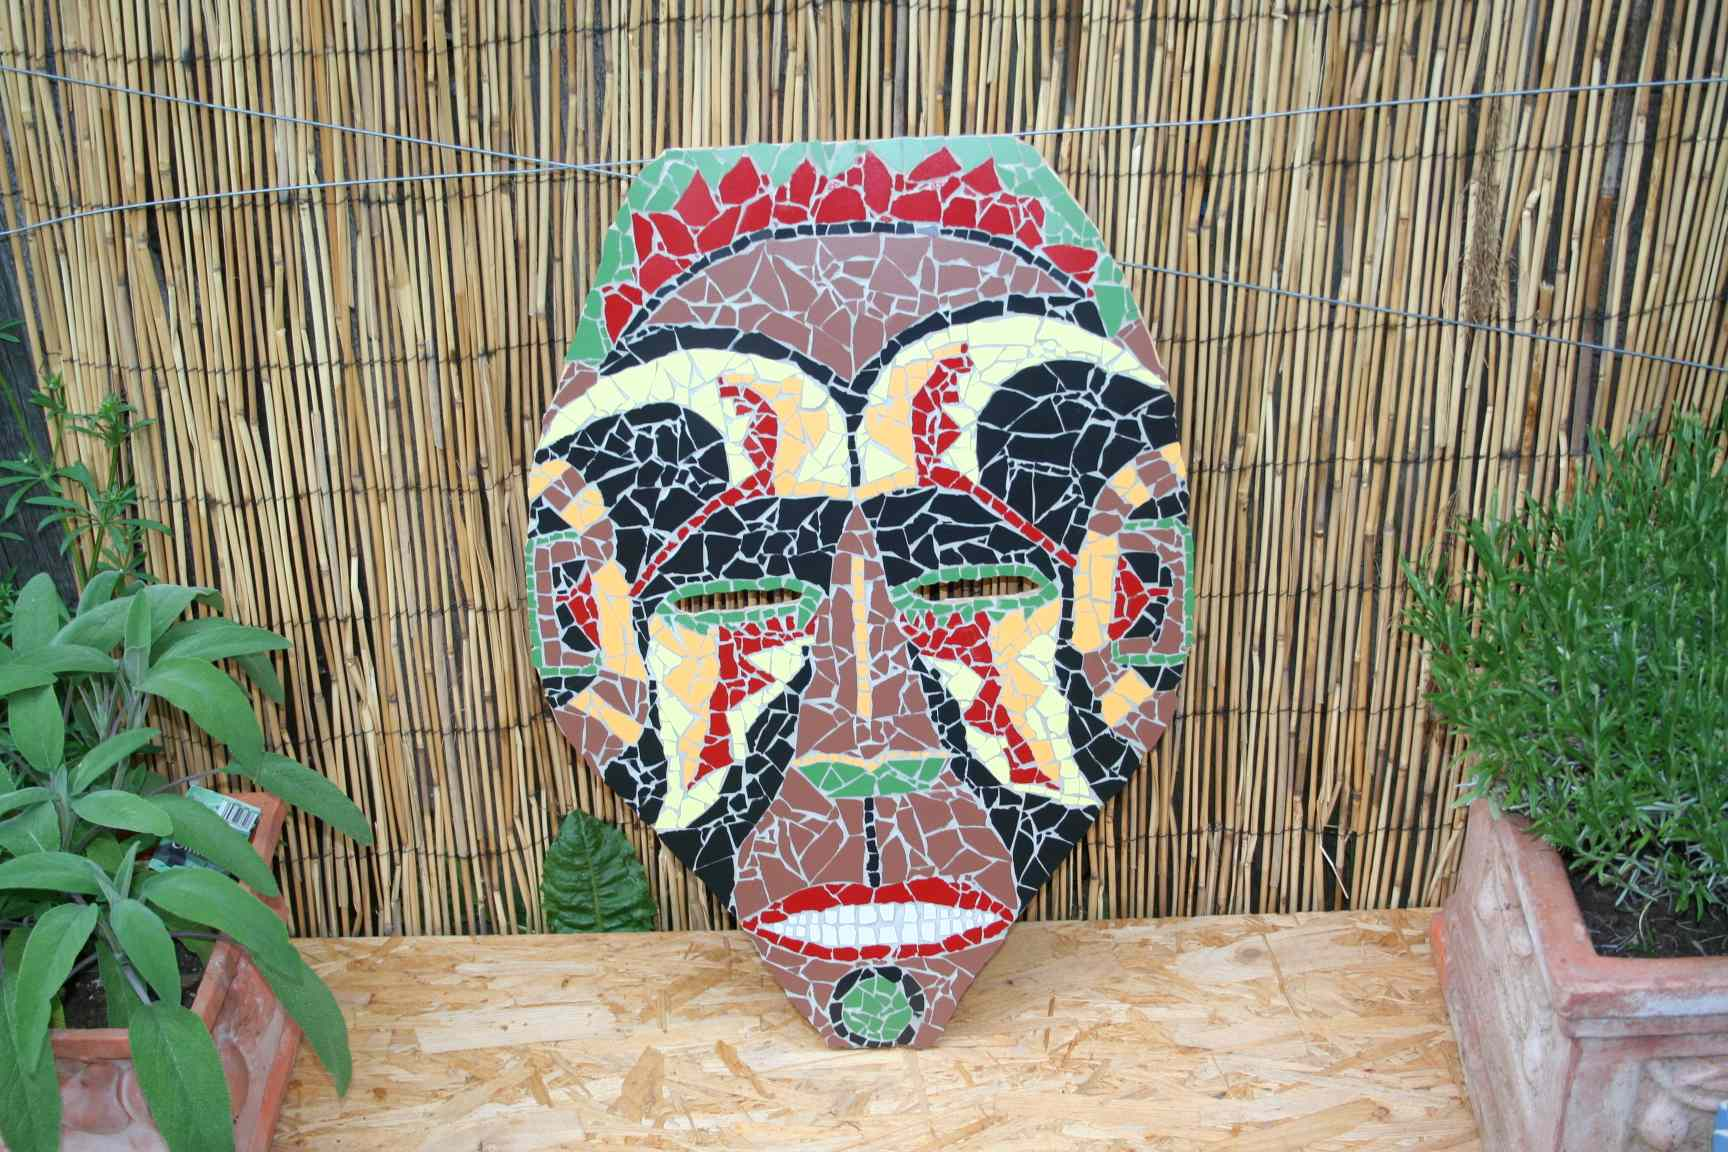 mosaikbild afrikanische maske katuschka s celticgarden. Black Bedroom Furniture Sets. Home Design Ideas